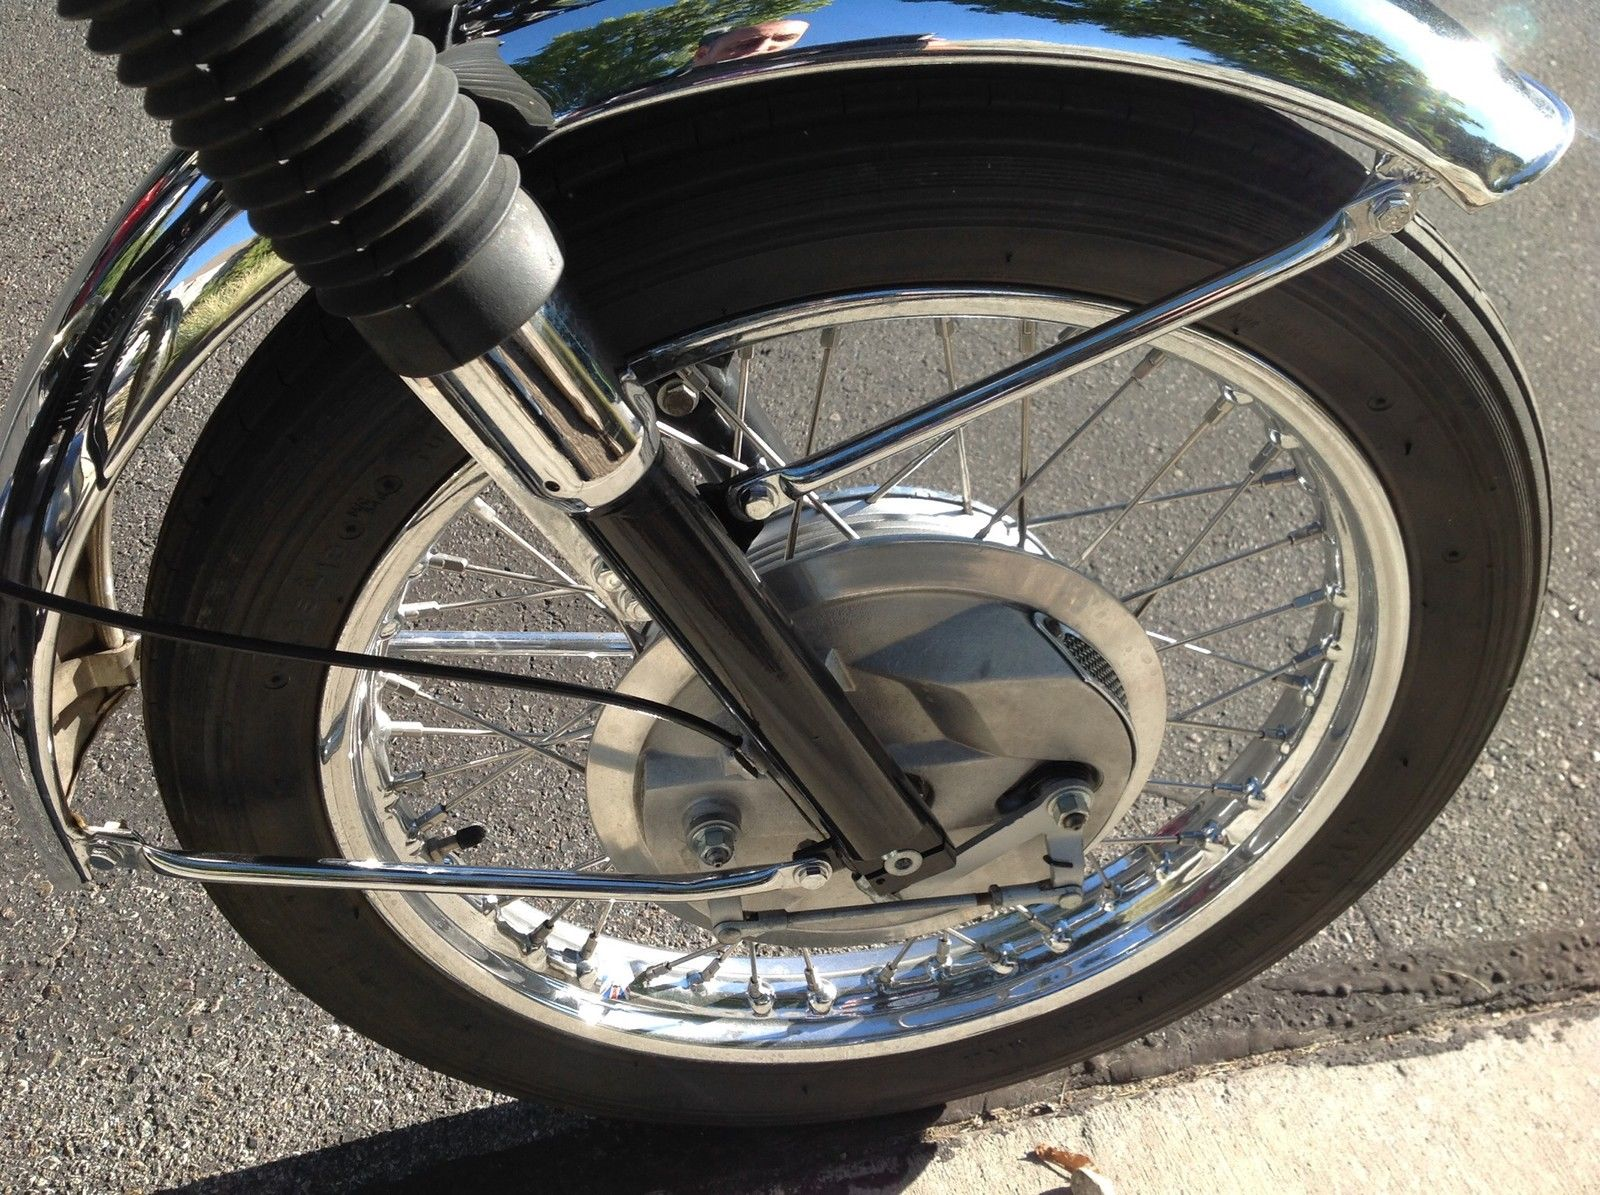 BSA A65 Lightning - 1969 - Front Wheel, Front Forks, Front Fender and Brake Plate.